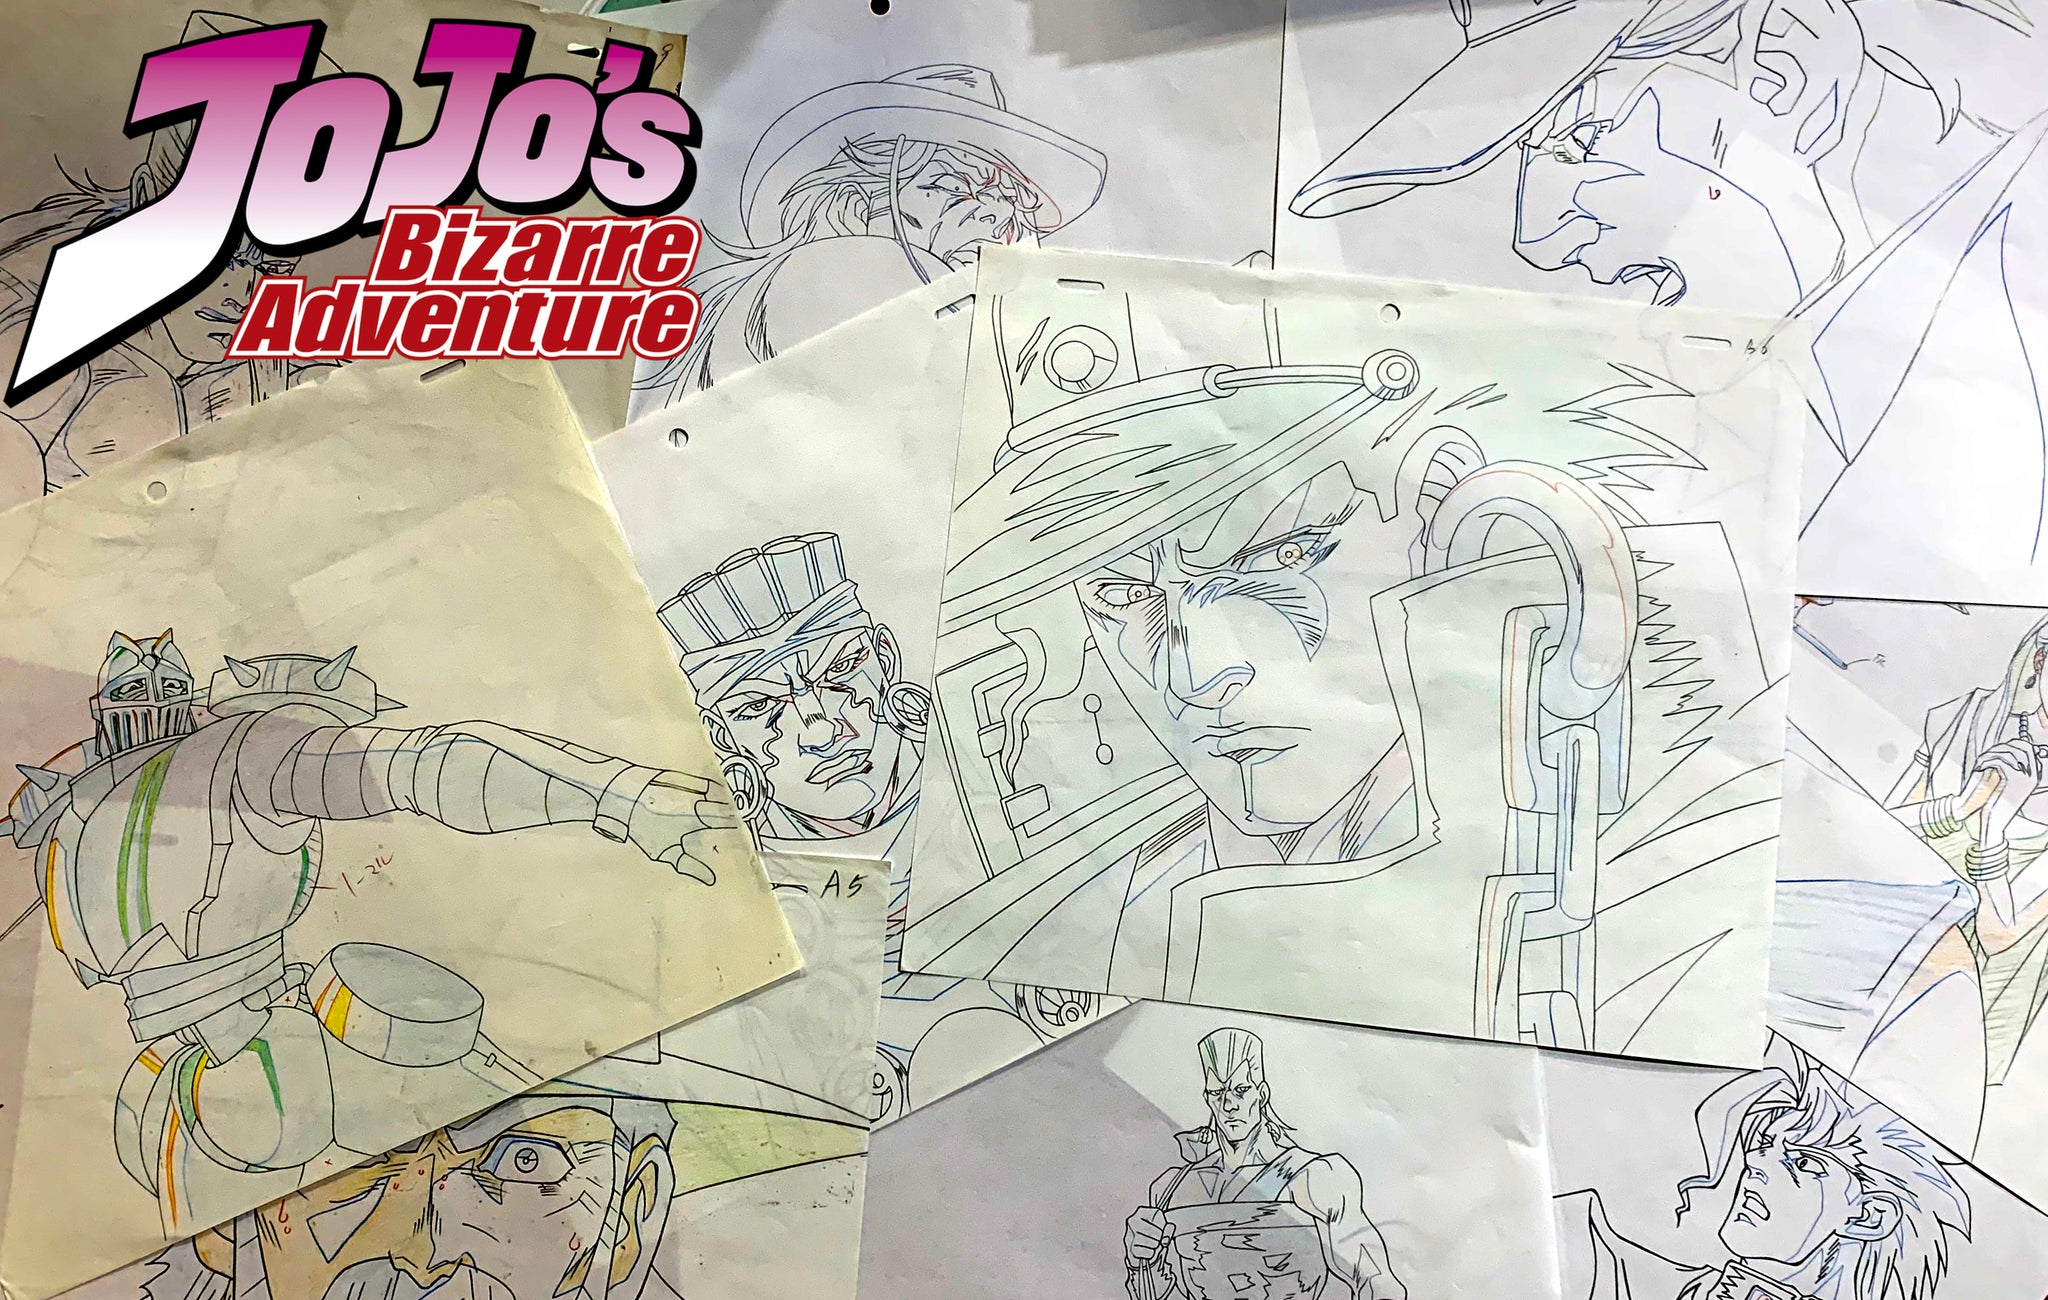 JoJo's Bizarre Adventure Sketch Art - Animation Legends